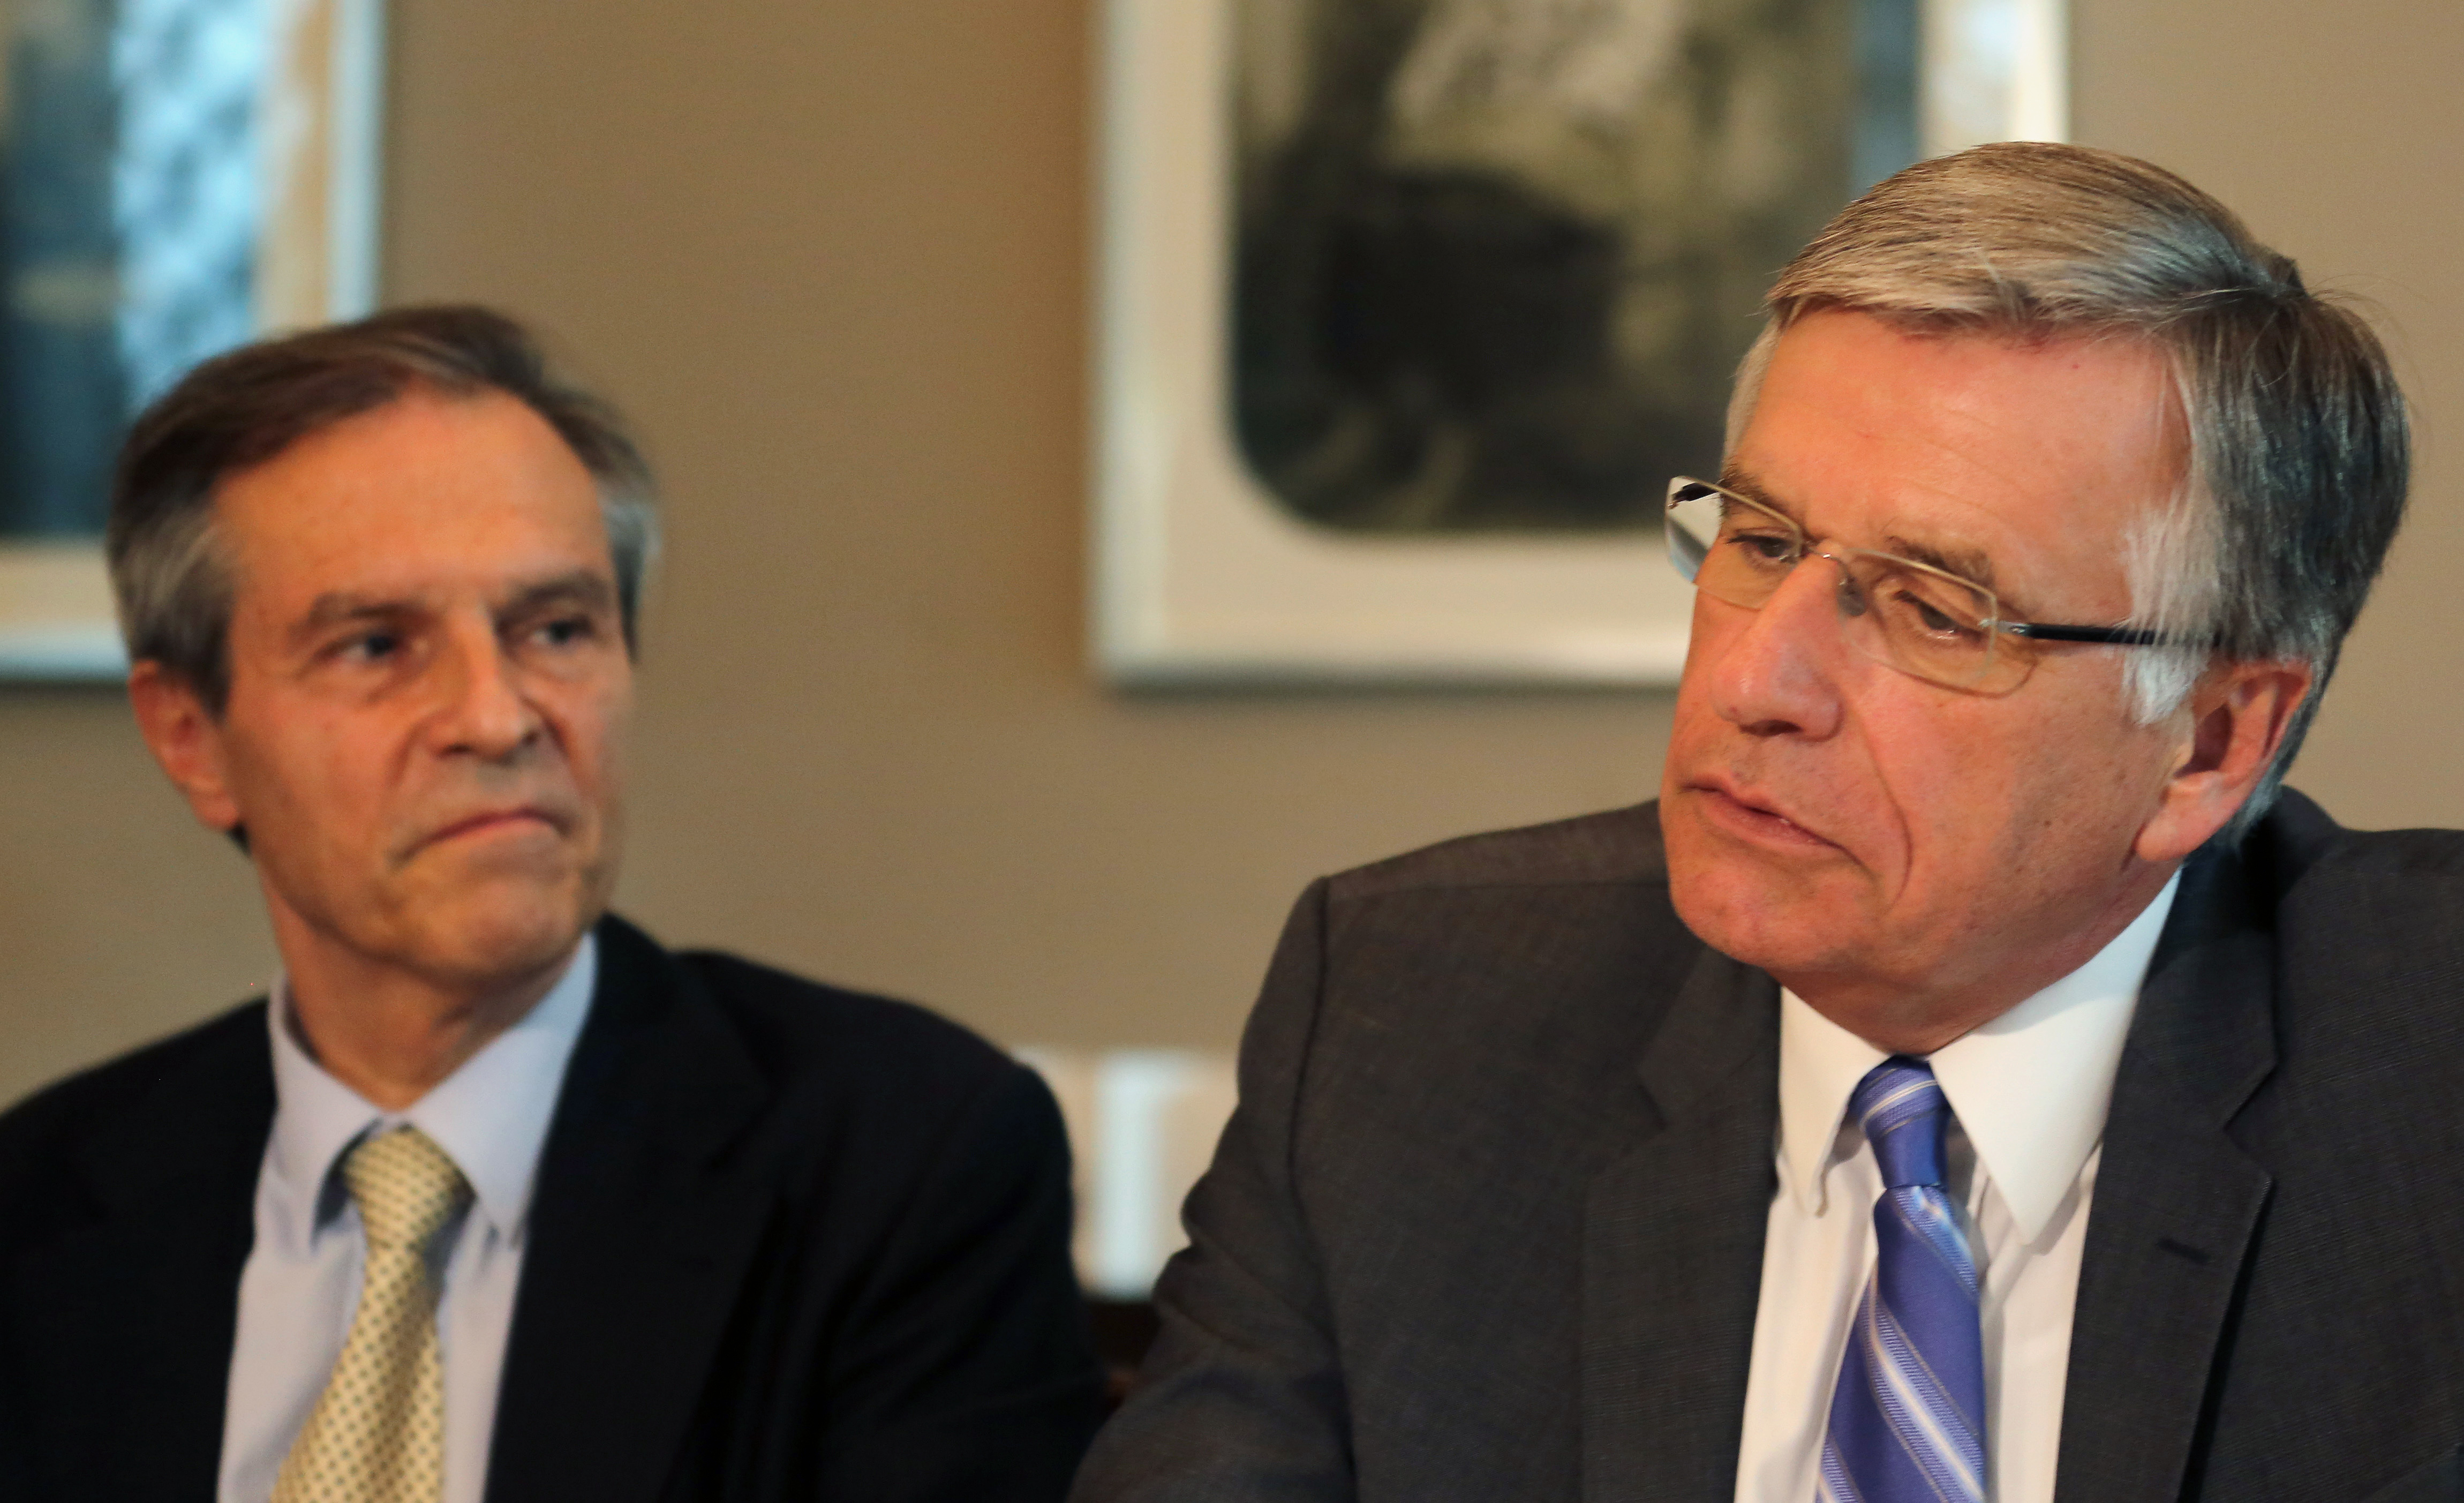 German Ambassador to India, Michael Steiner (L) listens to Dr. Hubert Lienhard (R), Chairman of the Asia-Pacific Committee of German Business (APA), speaking during a joint news conference in New Delhi, India, 11 July 2014.